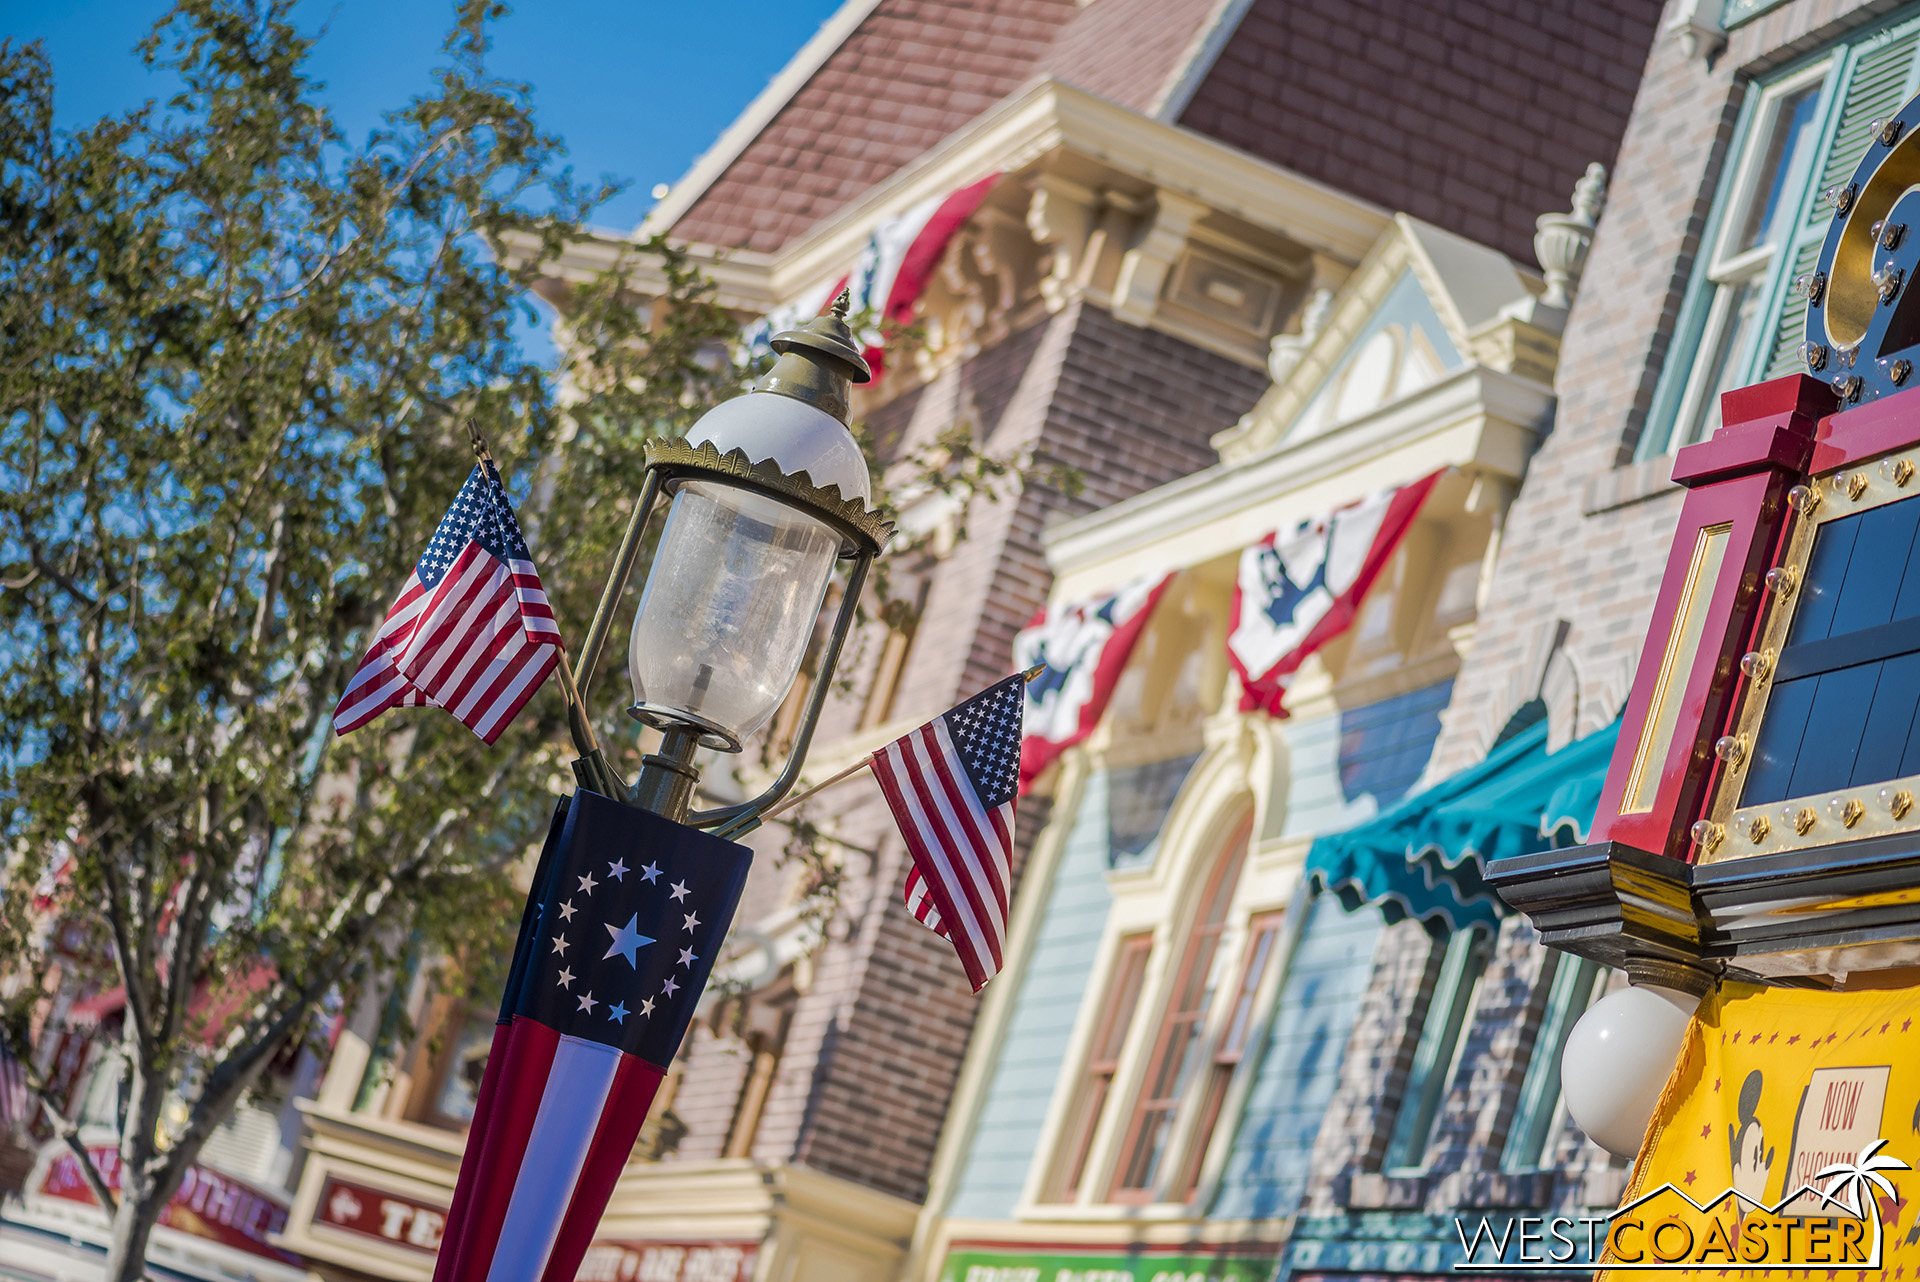 Main Street has its stars and stripes too.